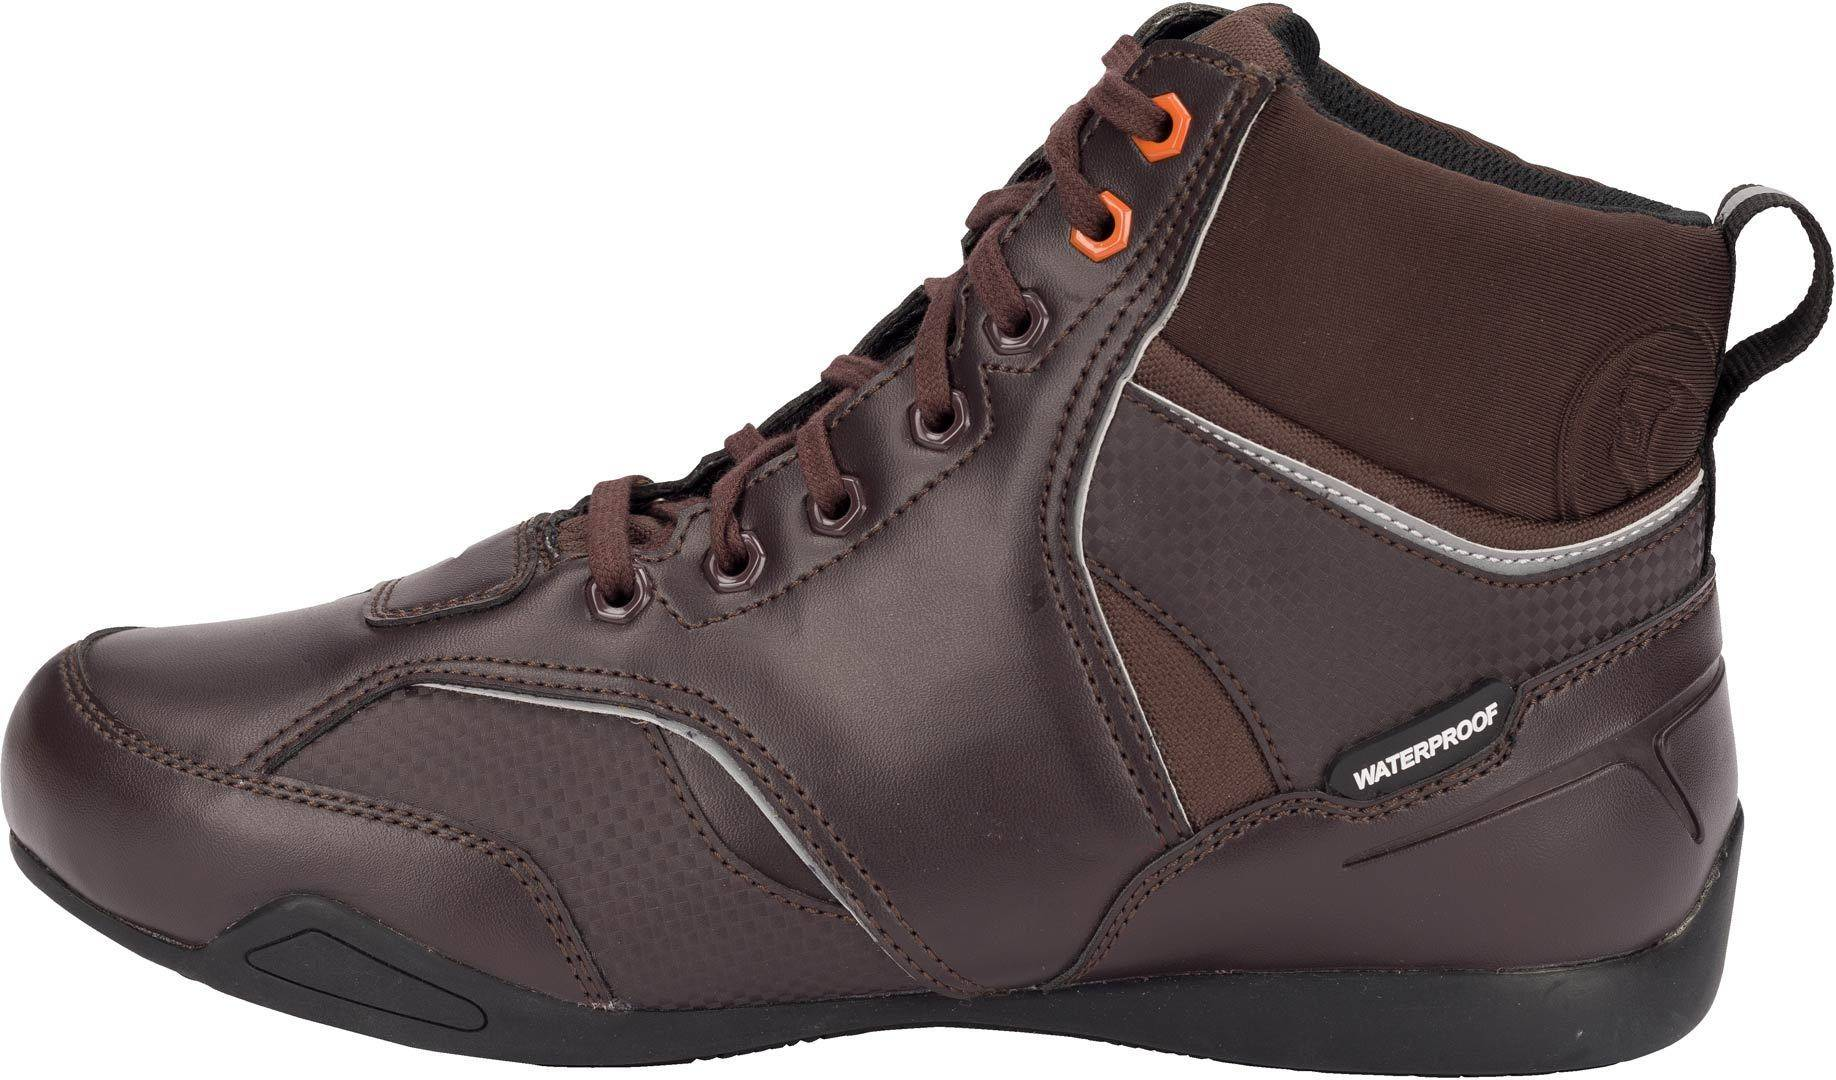 Bering Escape Chaussures Brun taille : 43